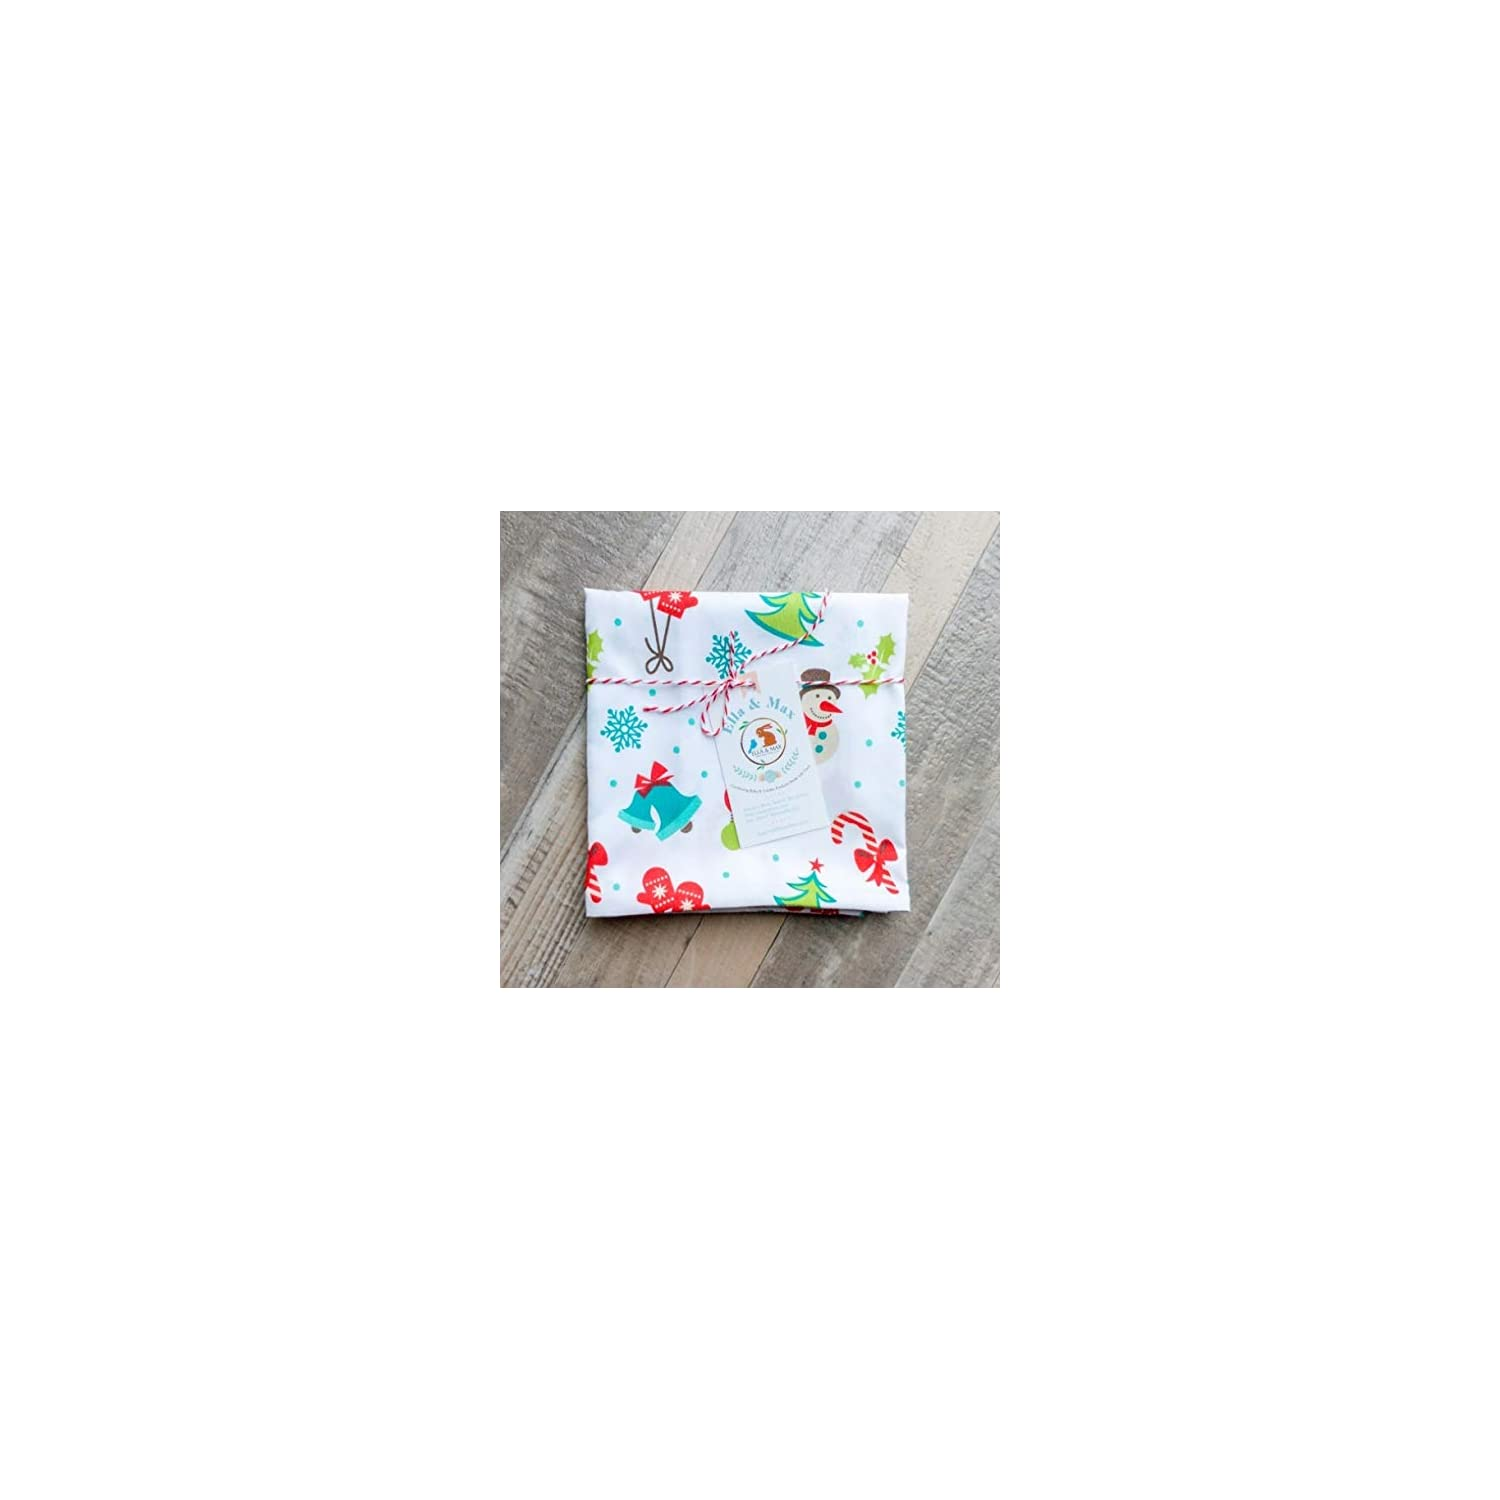 CHRISTMAS PILLOW CASE TODDLER or TRAVEL Size. SOFT & CUDDLY. Fits 13×18 & 14×19 toddler pillows. Easy to wash & no ironing. Handmade in USA. Made of luxury microfiber fabric. (Wonderland)